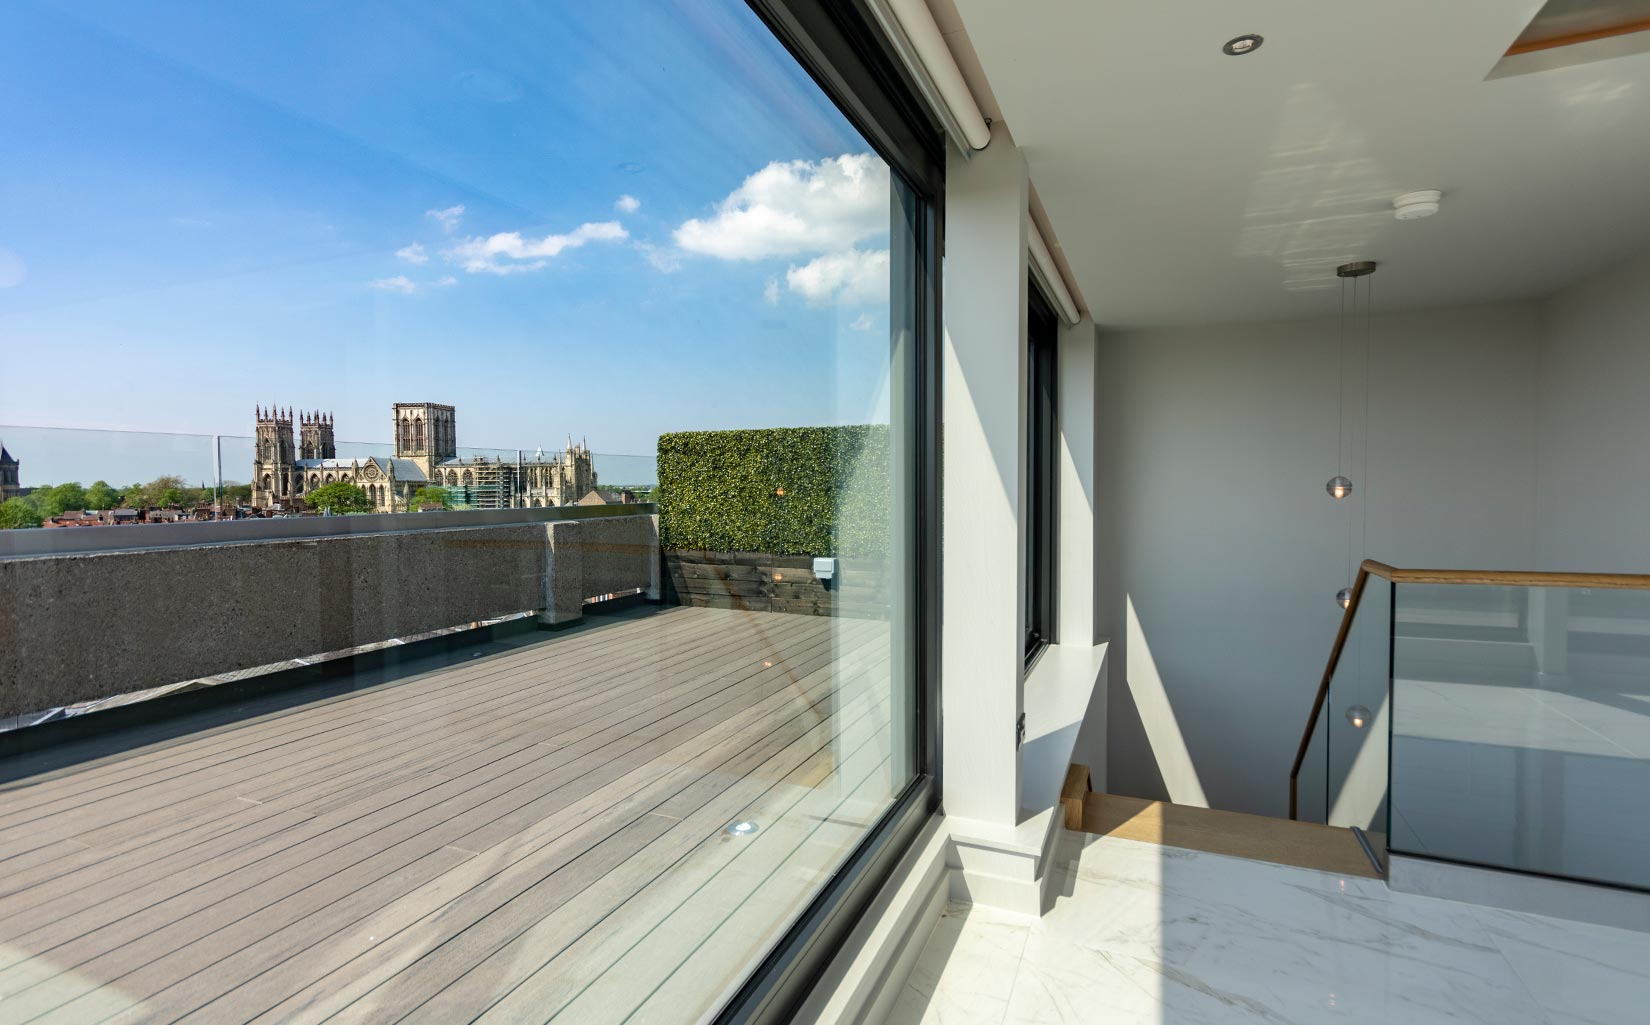 Stonebow House, York, View from penthouse towards York Minster - Photograph © Oakgate Developments Plc